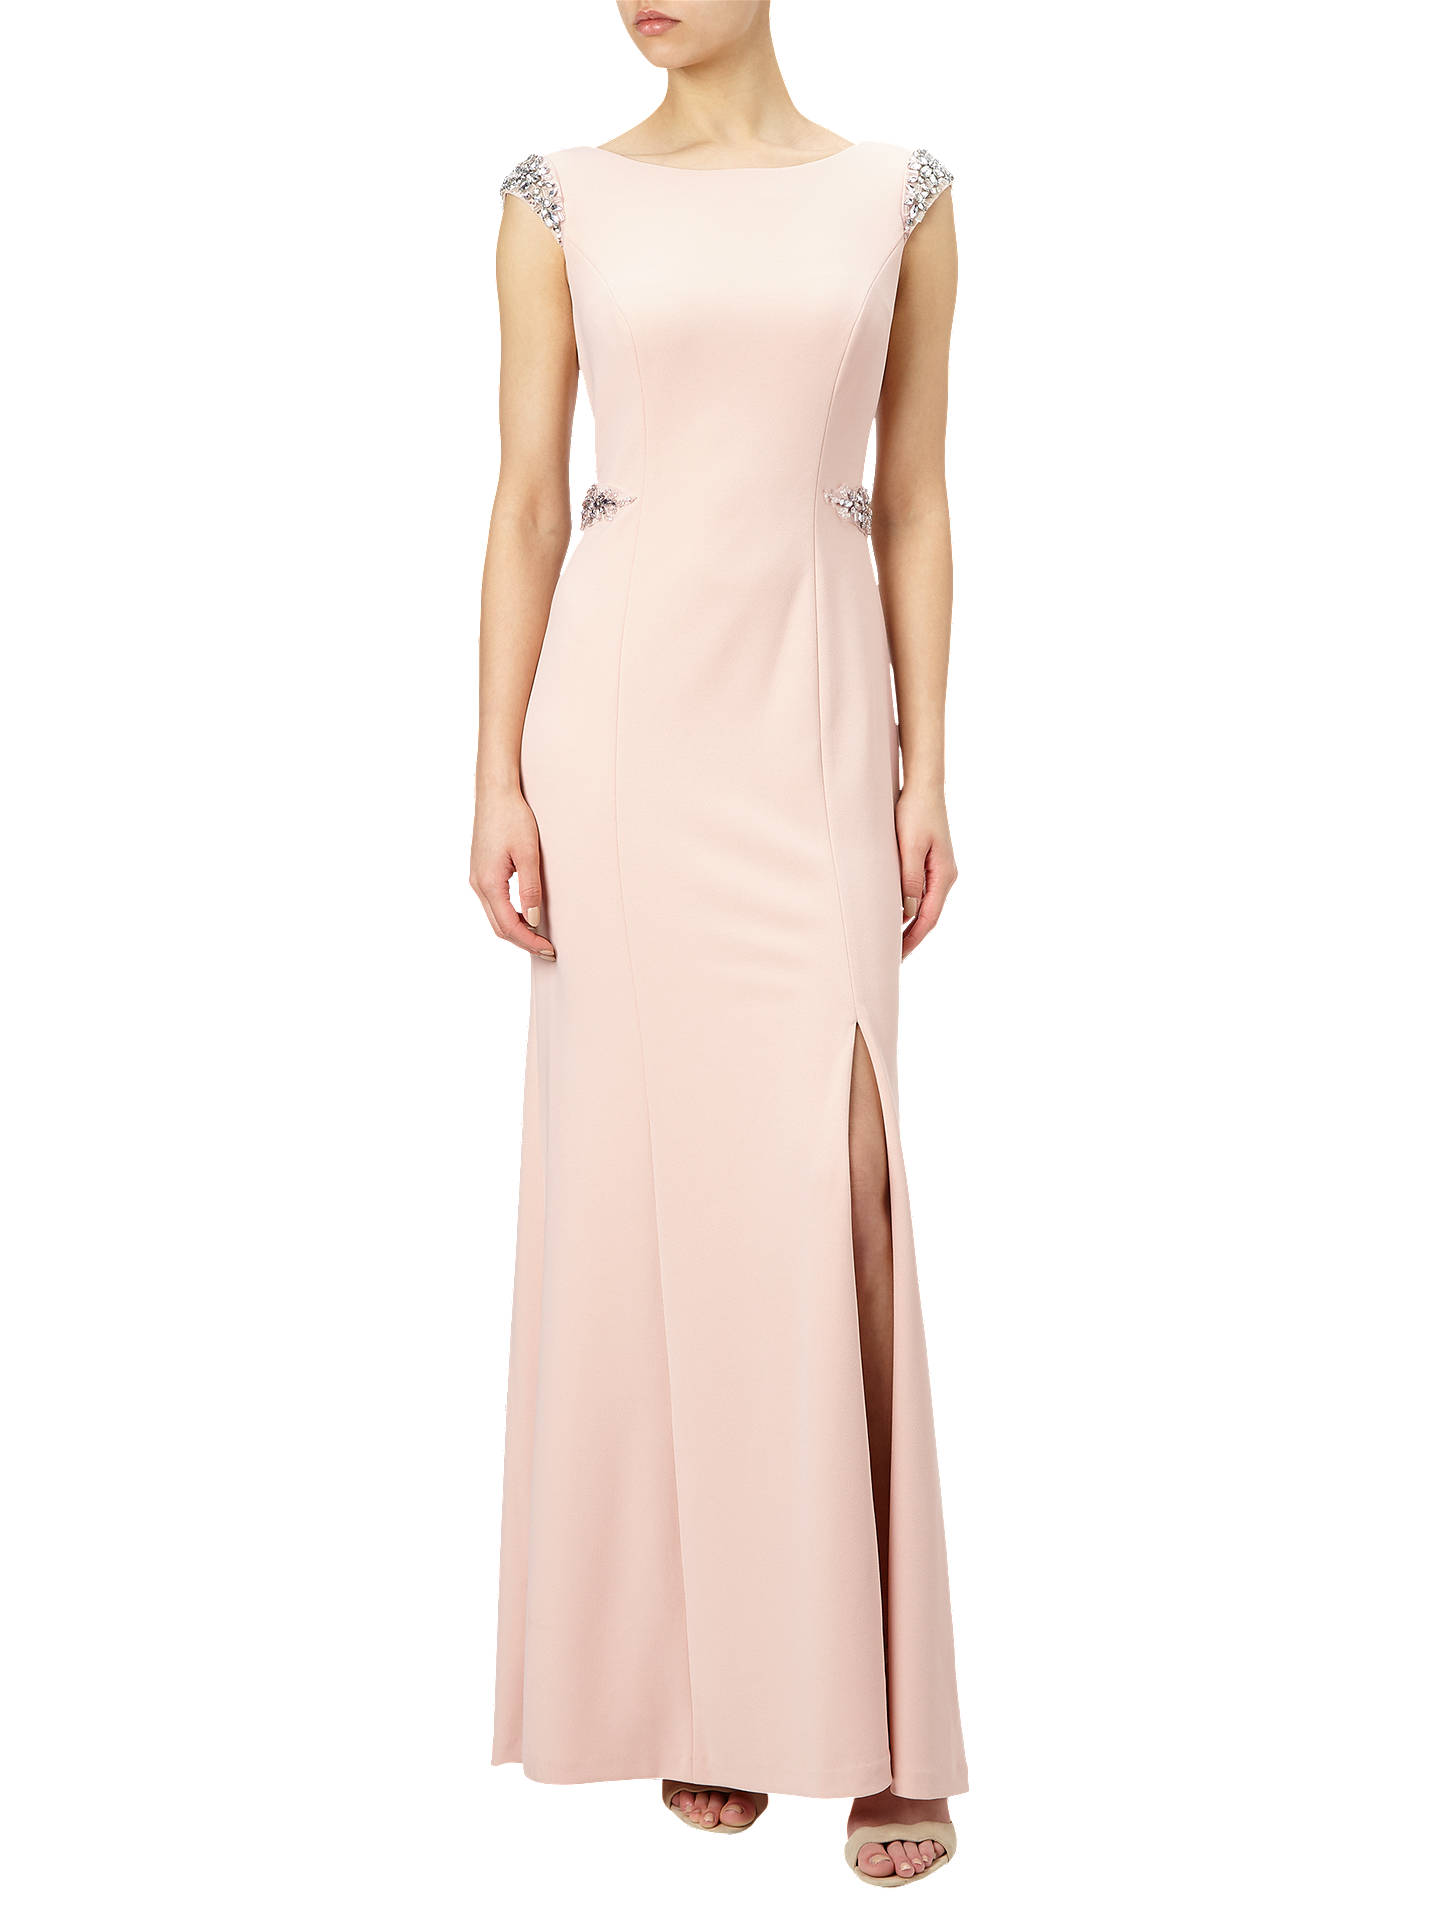 Adrianna Papell Cap Sleeve Crepe Mermaid Gown, Blush at John Lewis ...